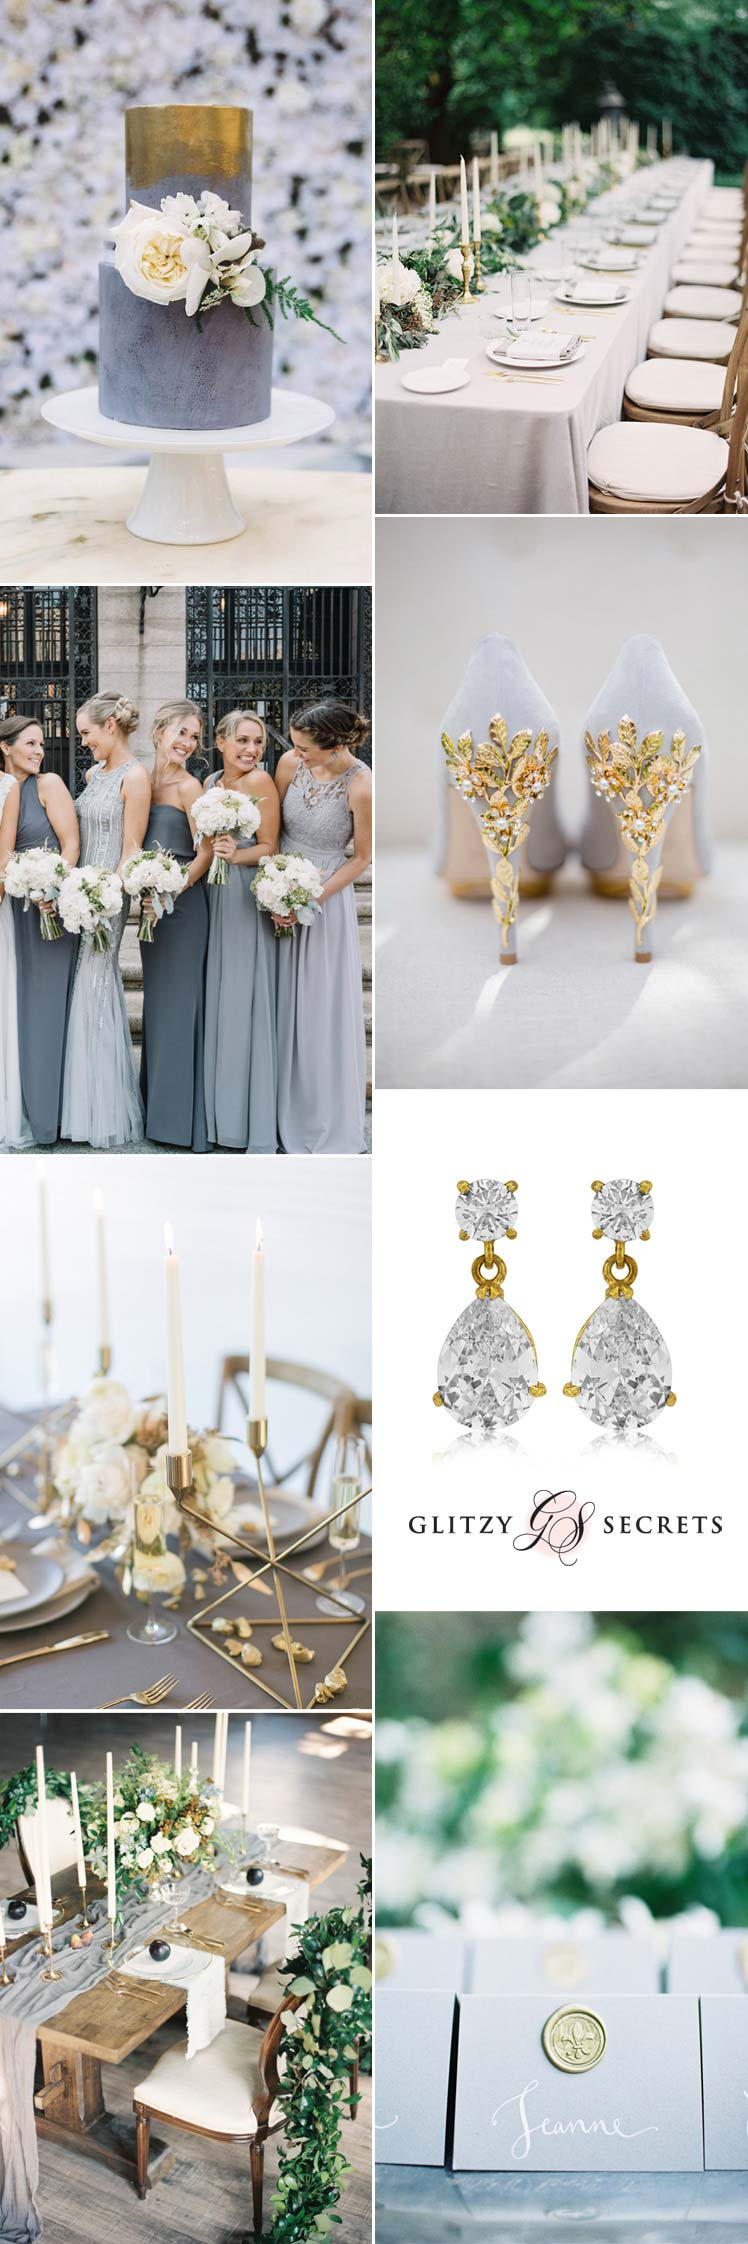 Gold and grey wedding inspiration